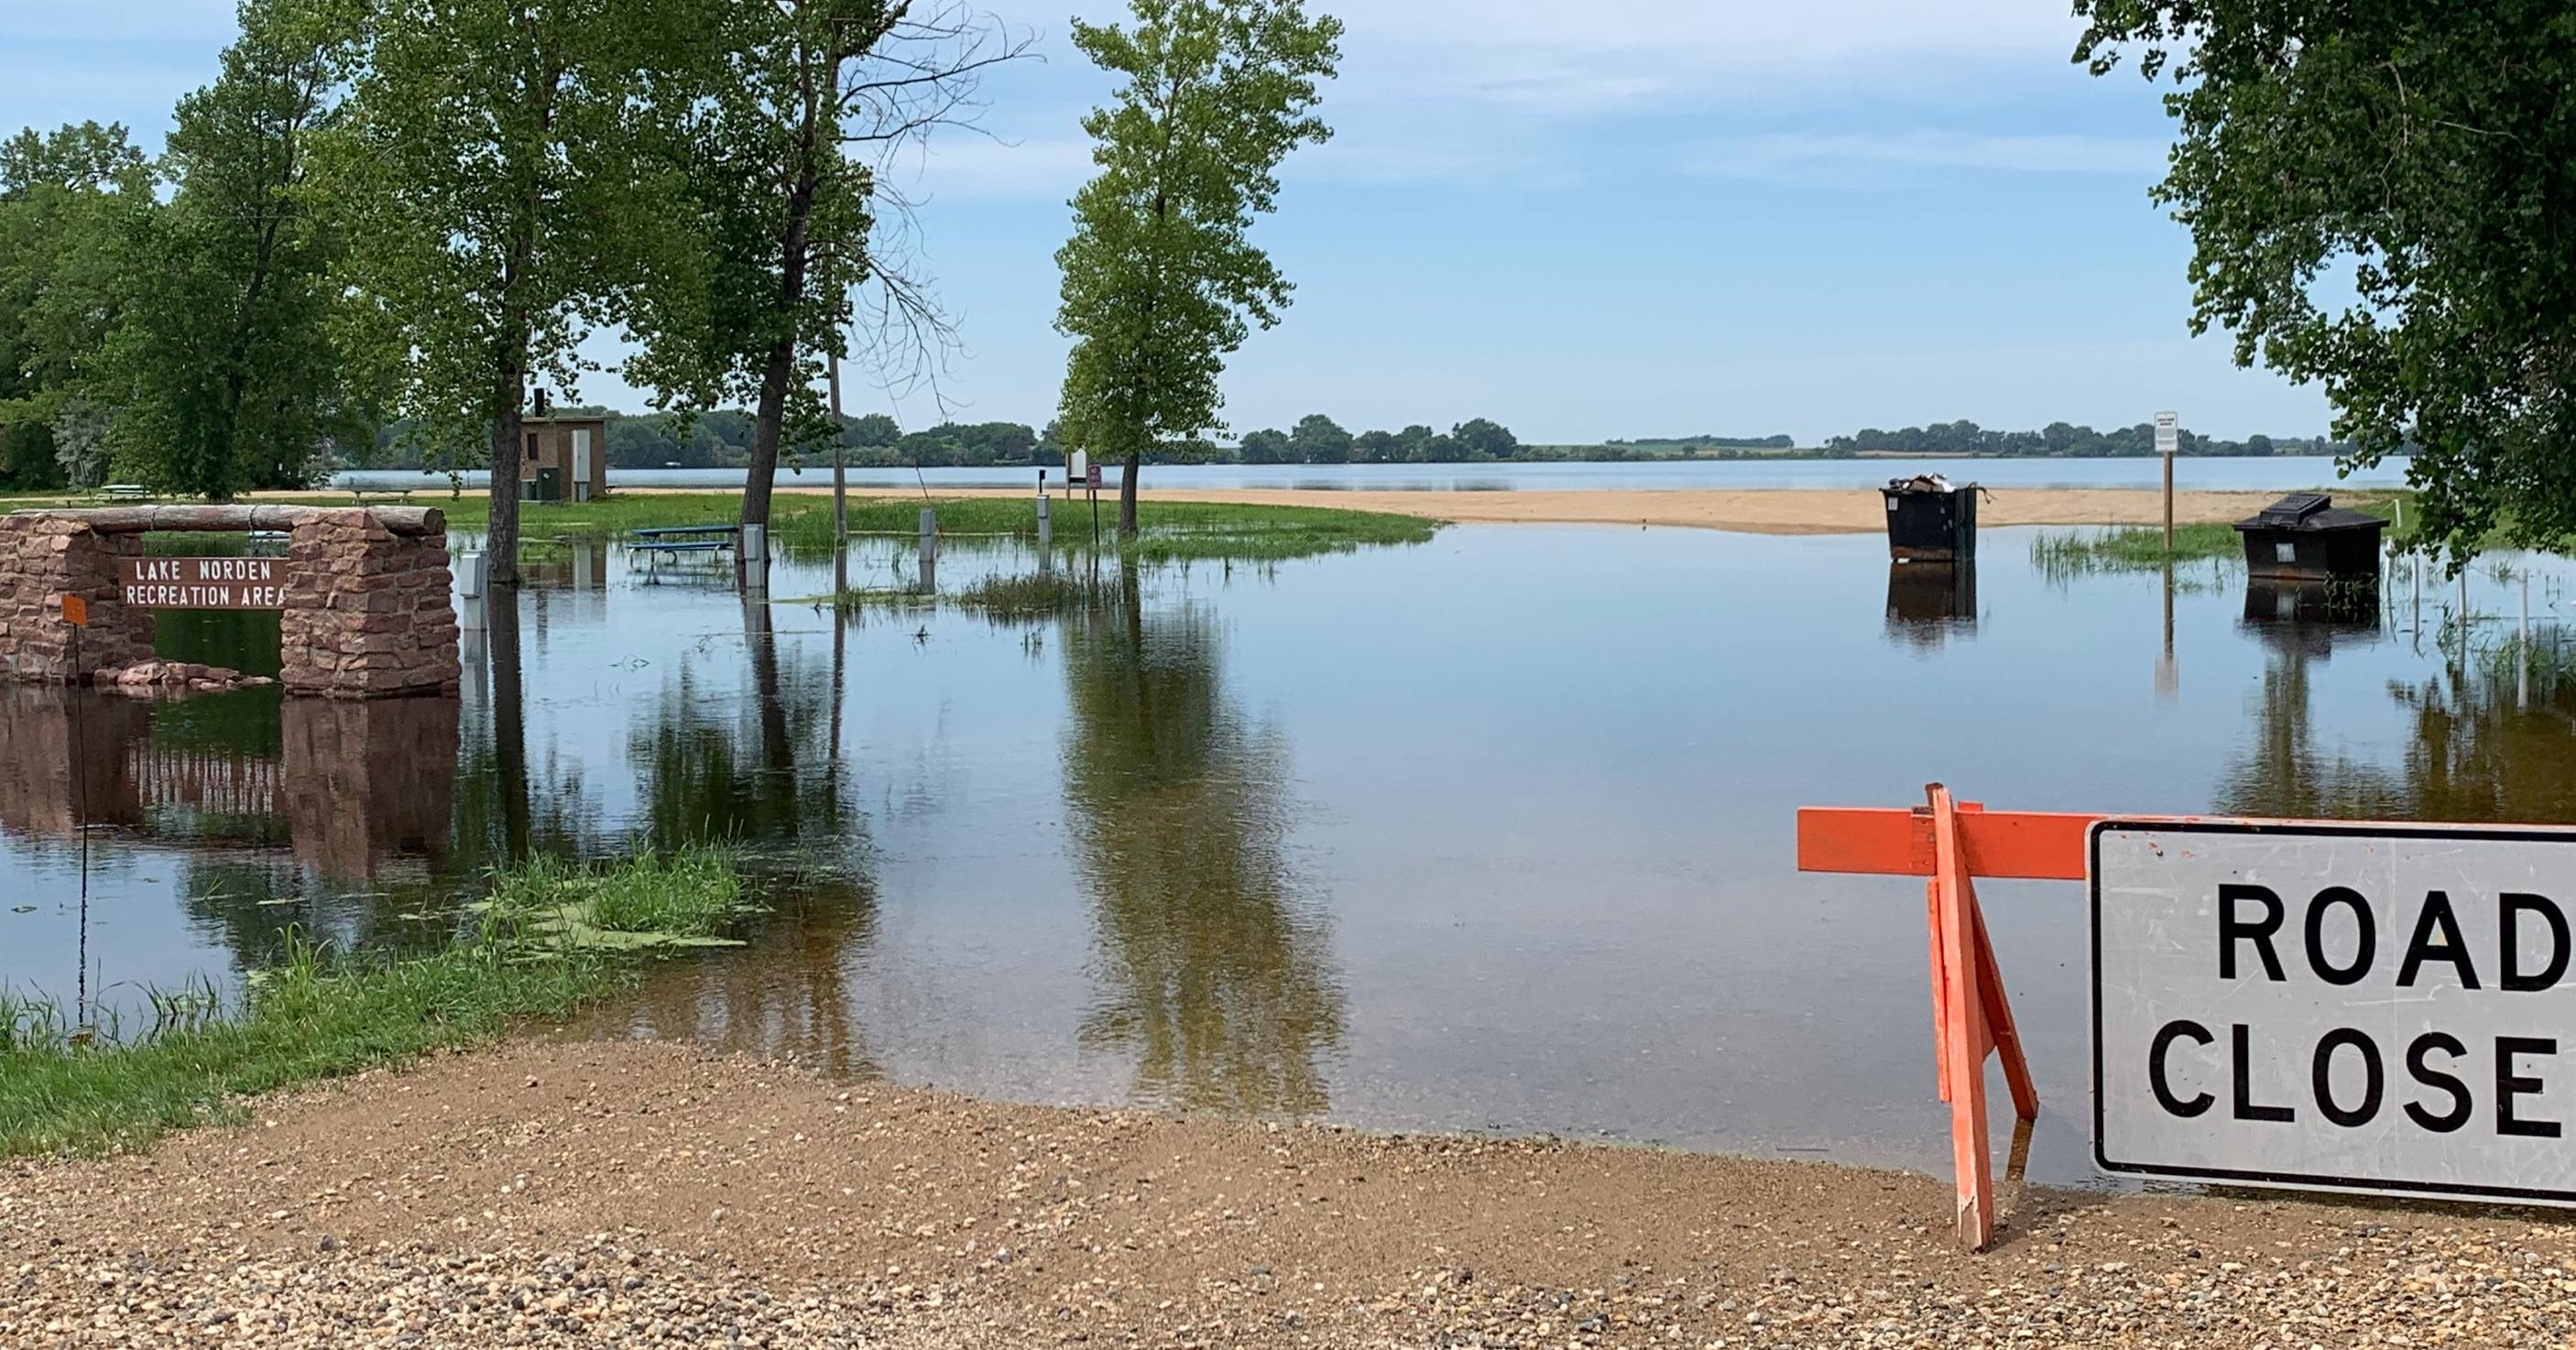 Lake Norden Recreation Area flooded over - July 12, 2019